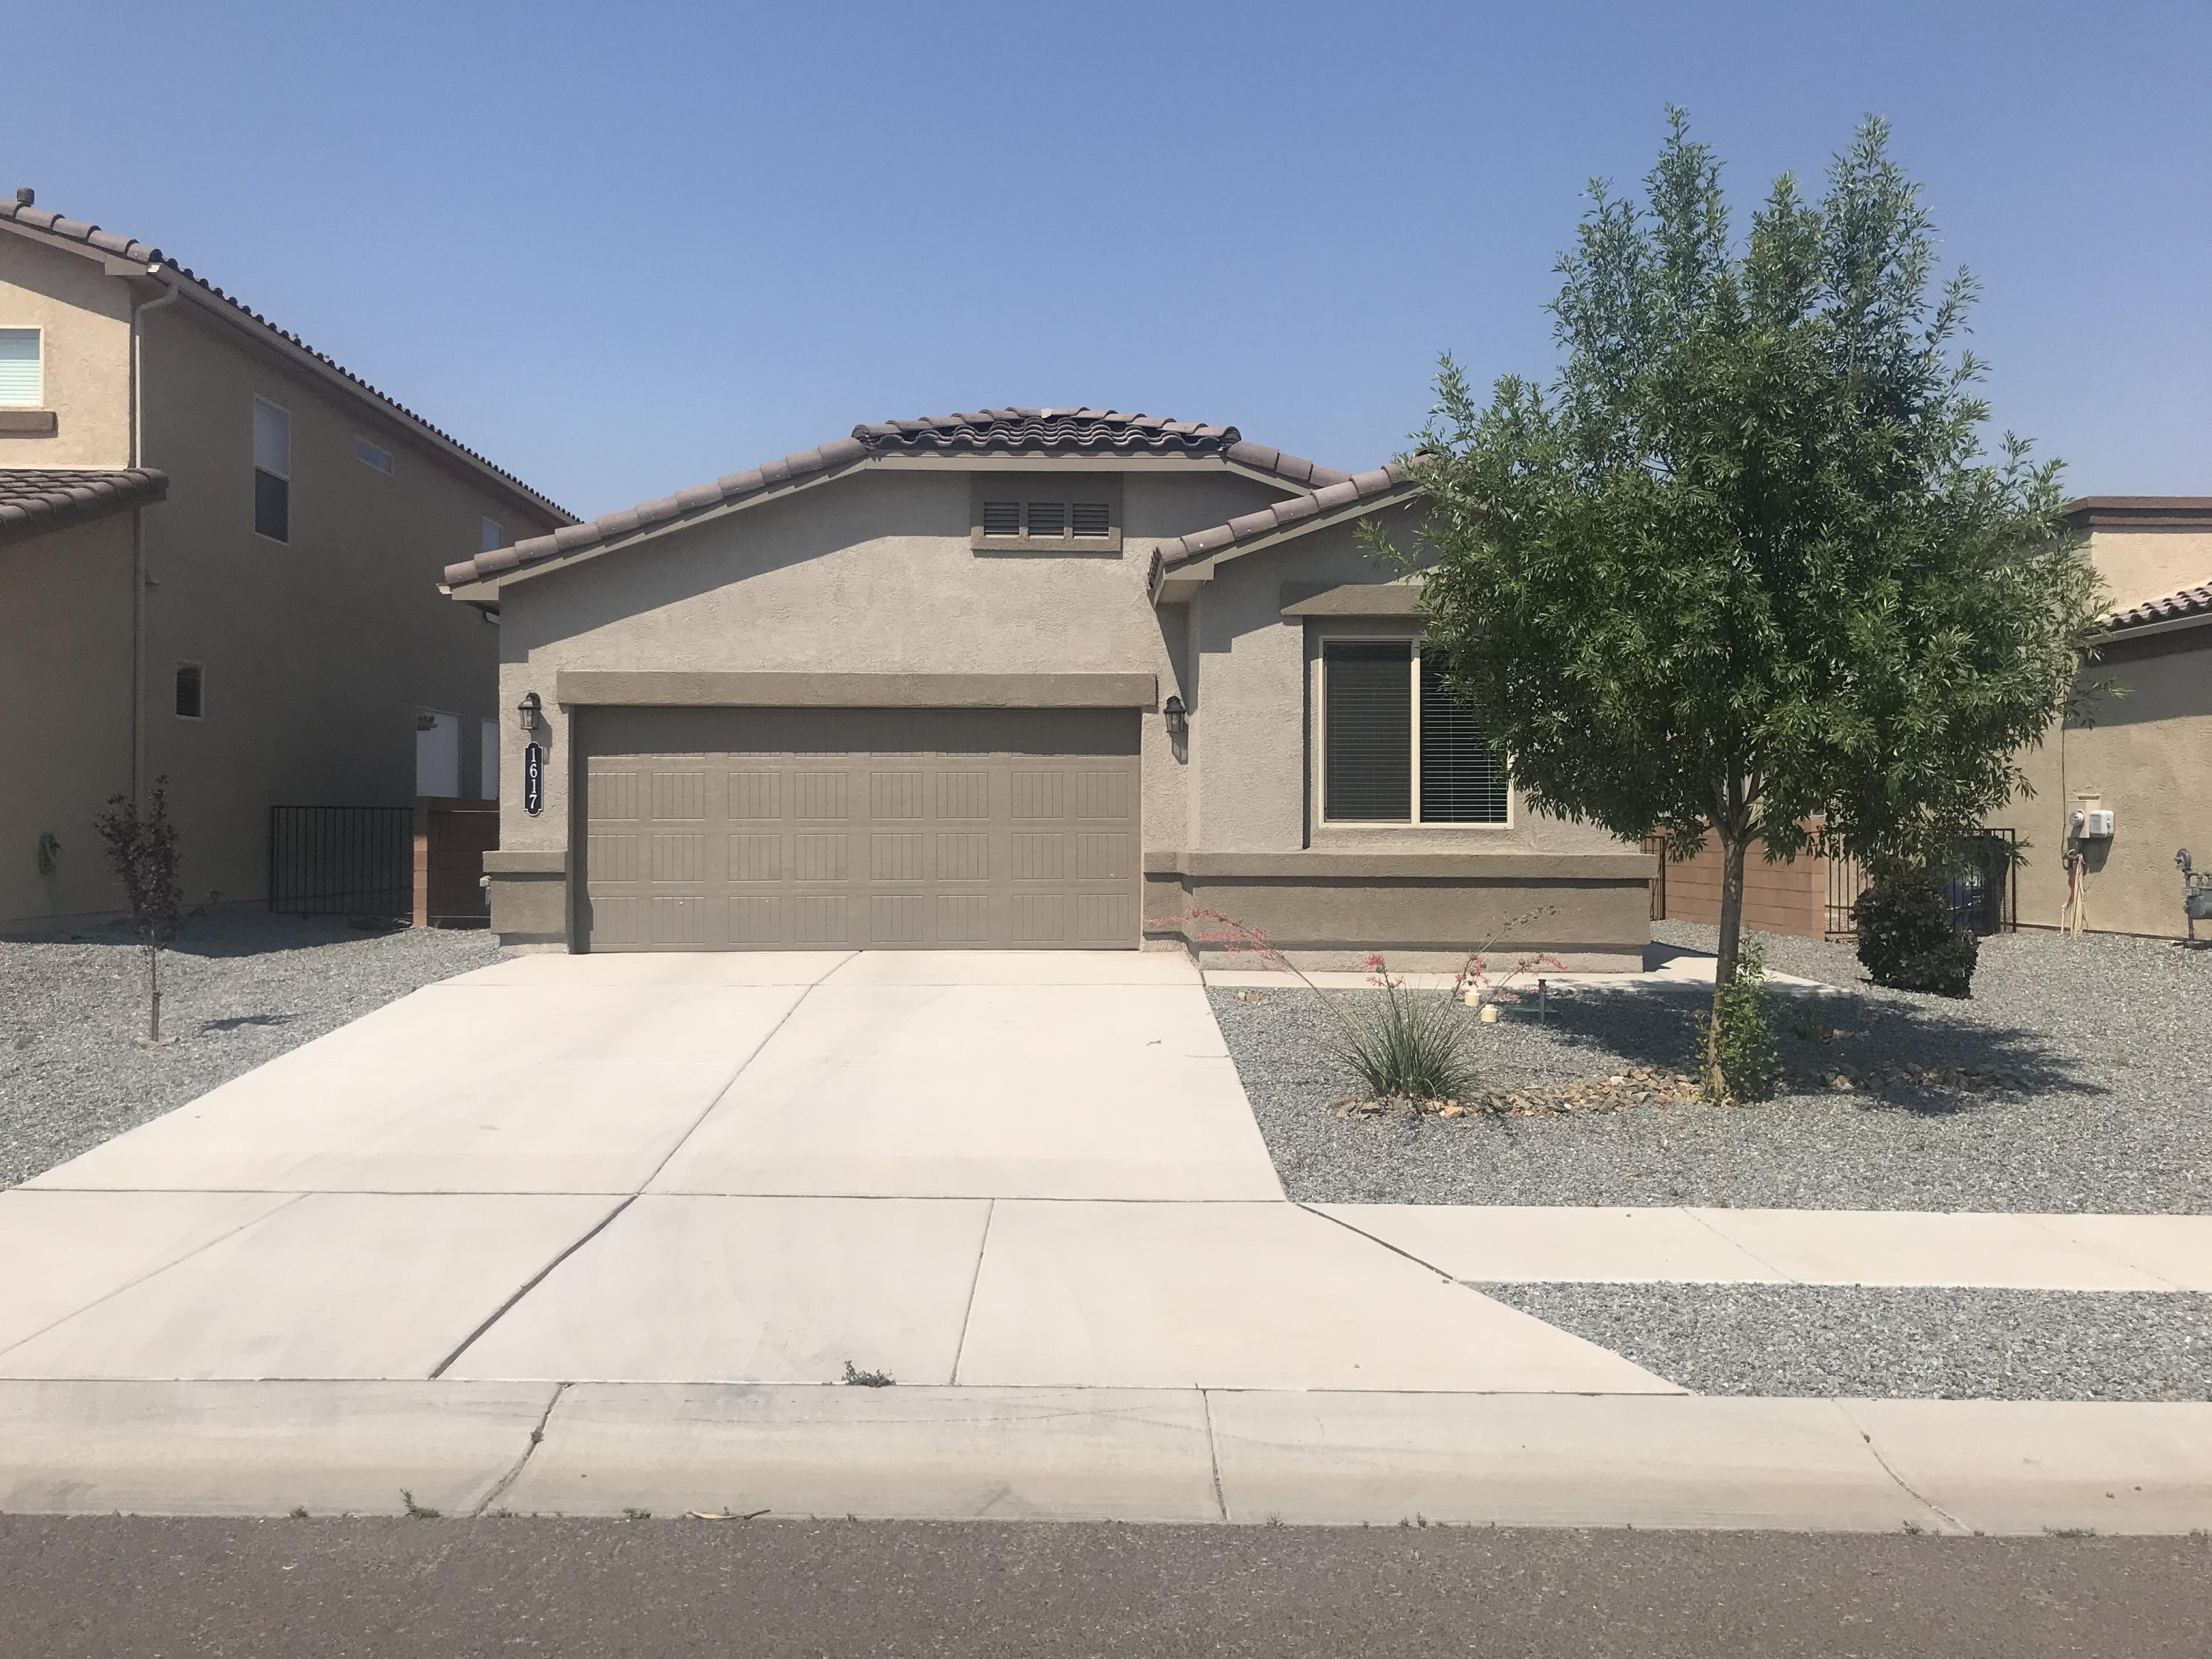 Amazing Views! Home is situated on an upgraded view lot. Home boasts open floor plan, granite countertops, stainless steel appliances, backyard landscaping with concrete patio.  All appliances included, (refrigerator and washer & dryer). Come see today, amazing value compared to new homes in area.